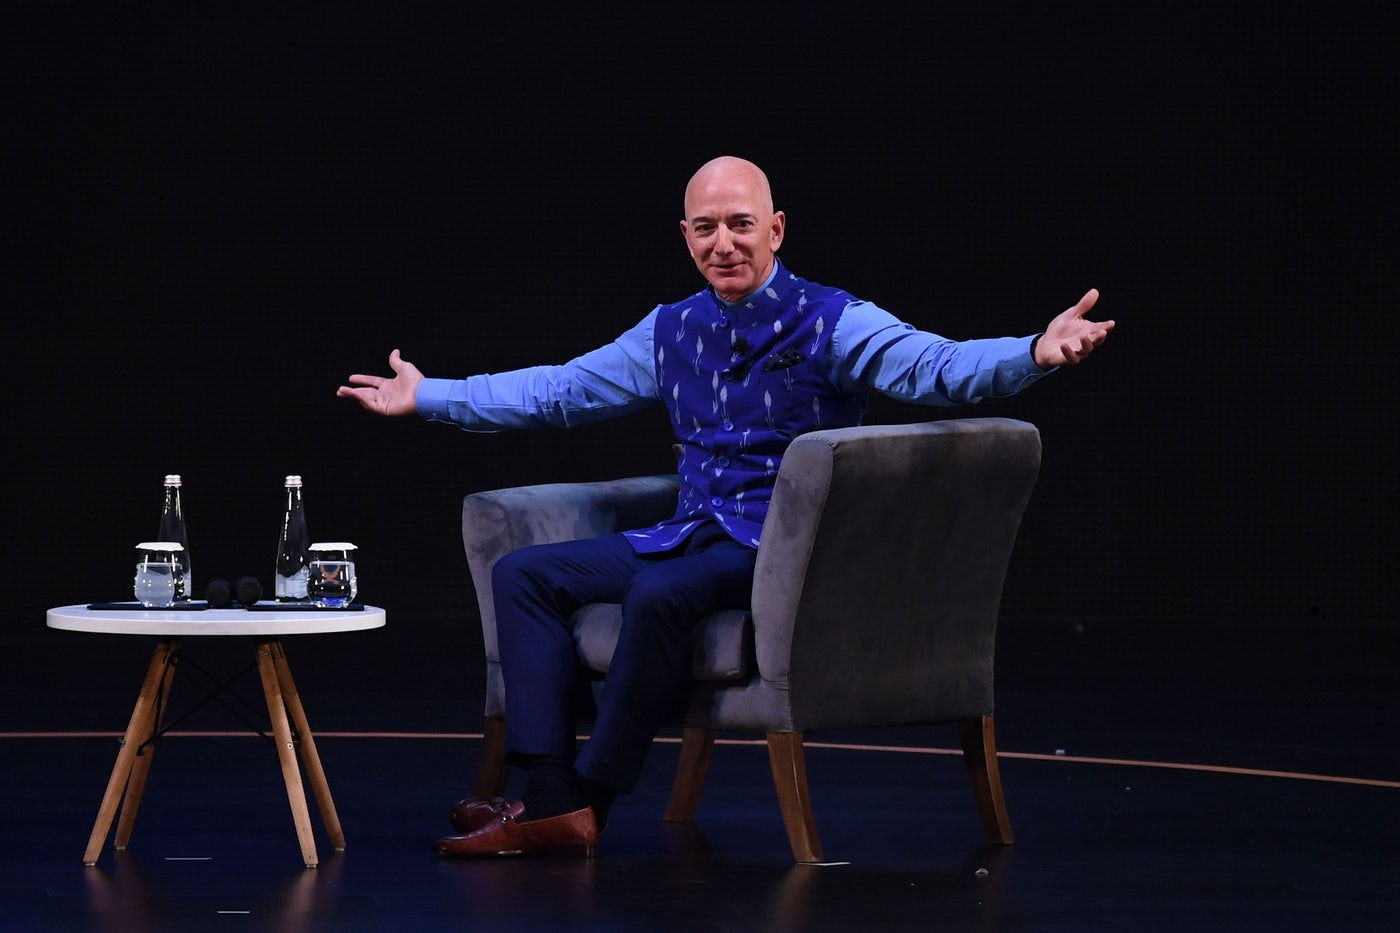 Amazon CEO Jeff Bezos gestures during an event in New Delhi in 2020.